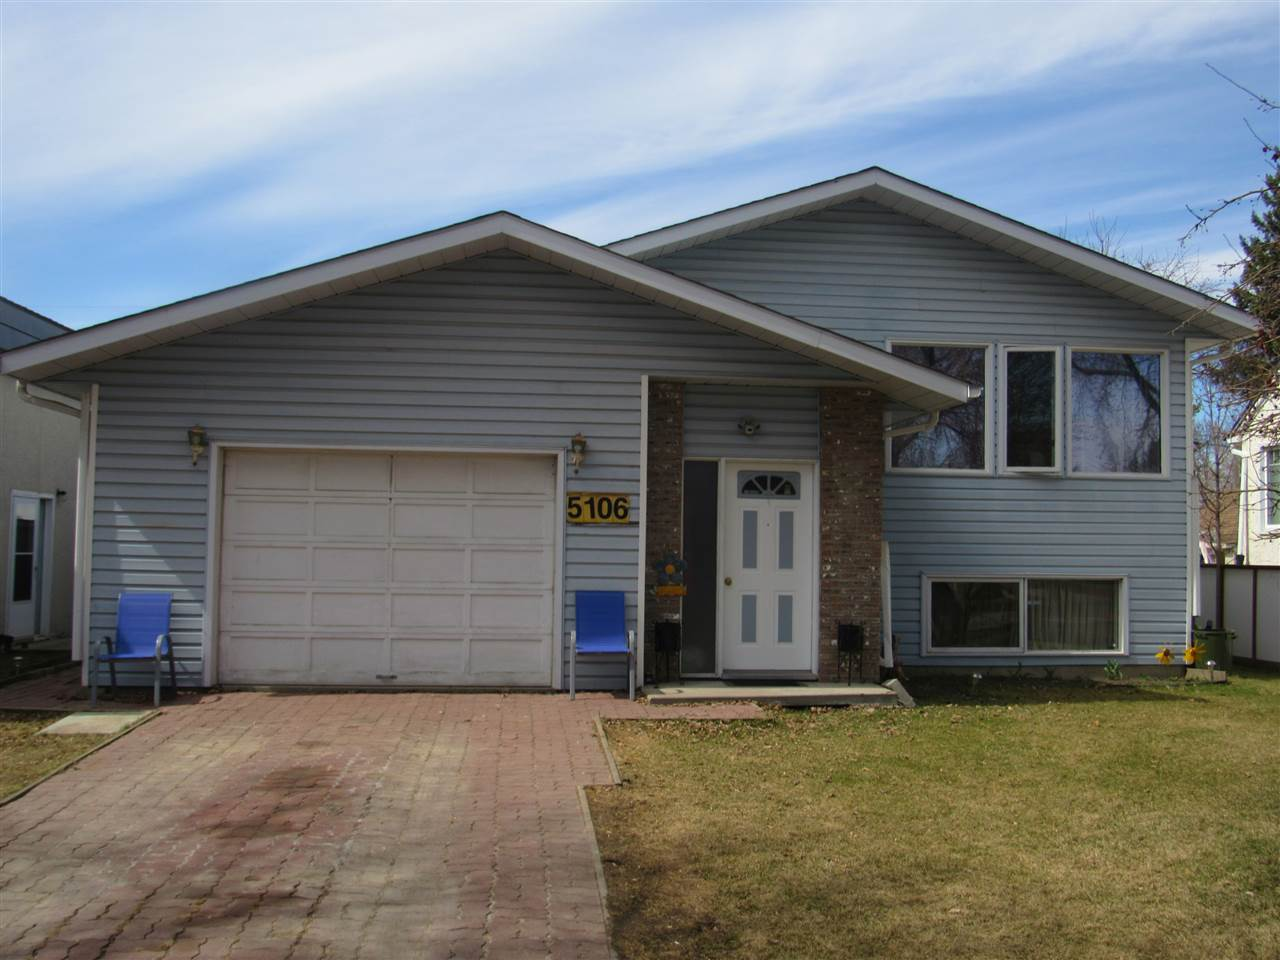 MLS® listing #E4178062 for sale located at 5106 53 Street